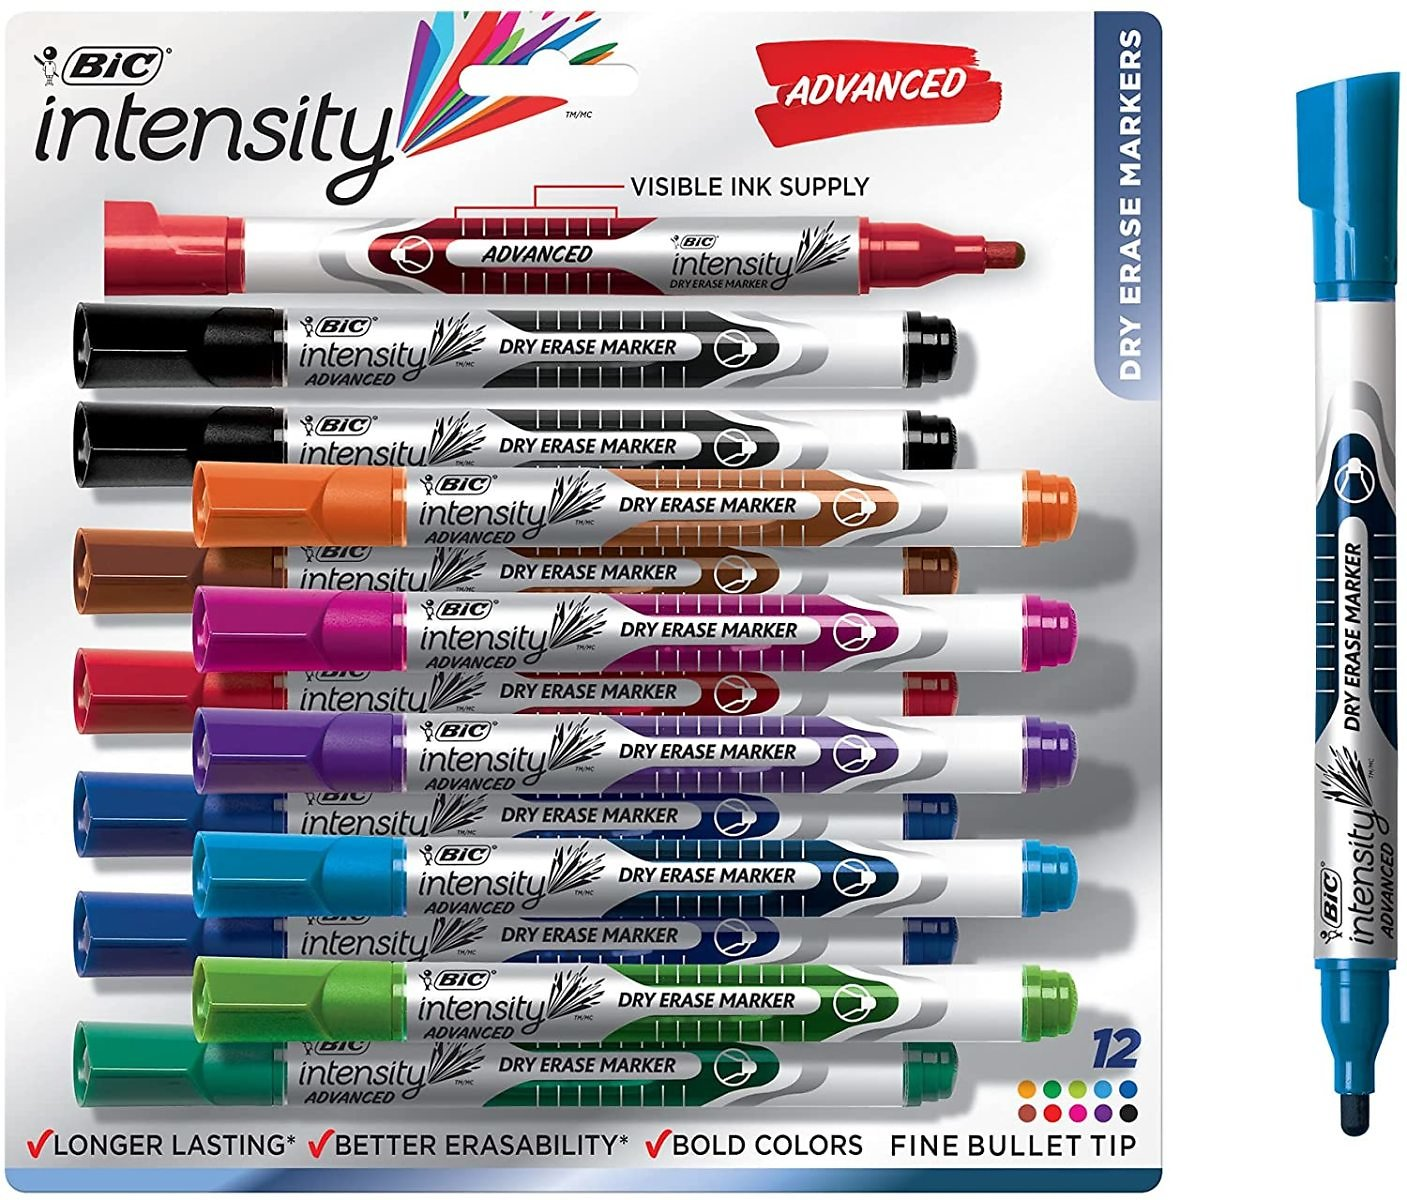 BIC Intensity Advanced Dry Erase Marker, 12 Count